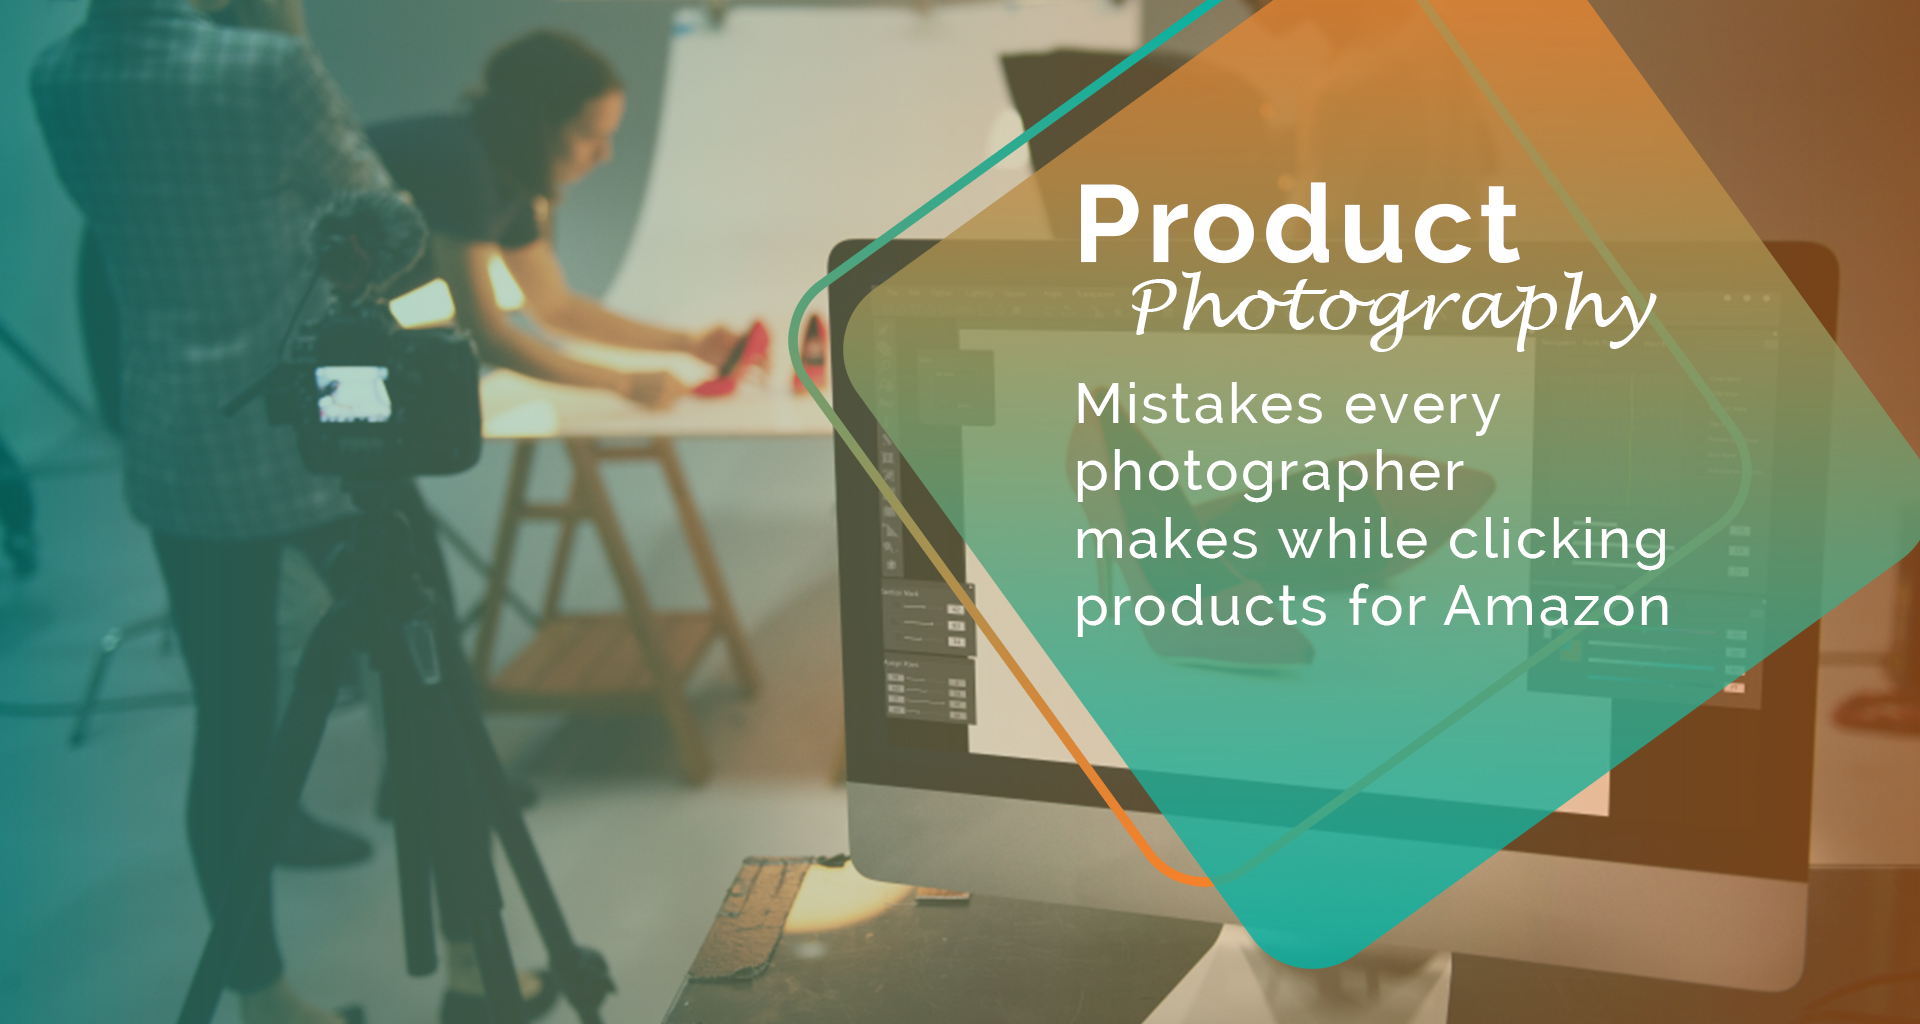 8 Mistakes Every Photographer Makes While Clicking Products For Amazon